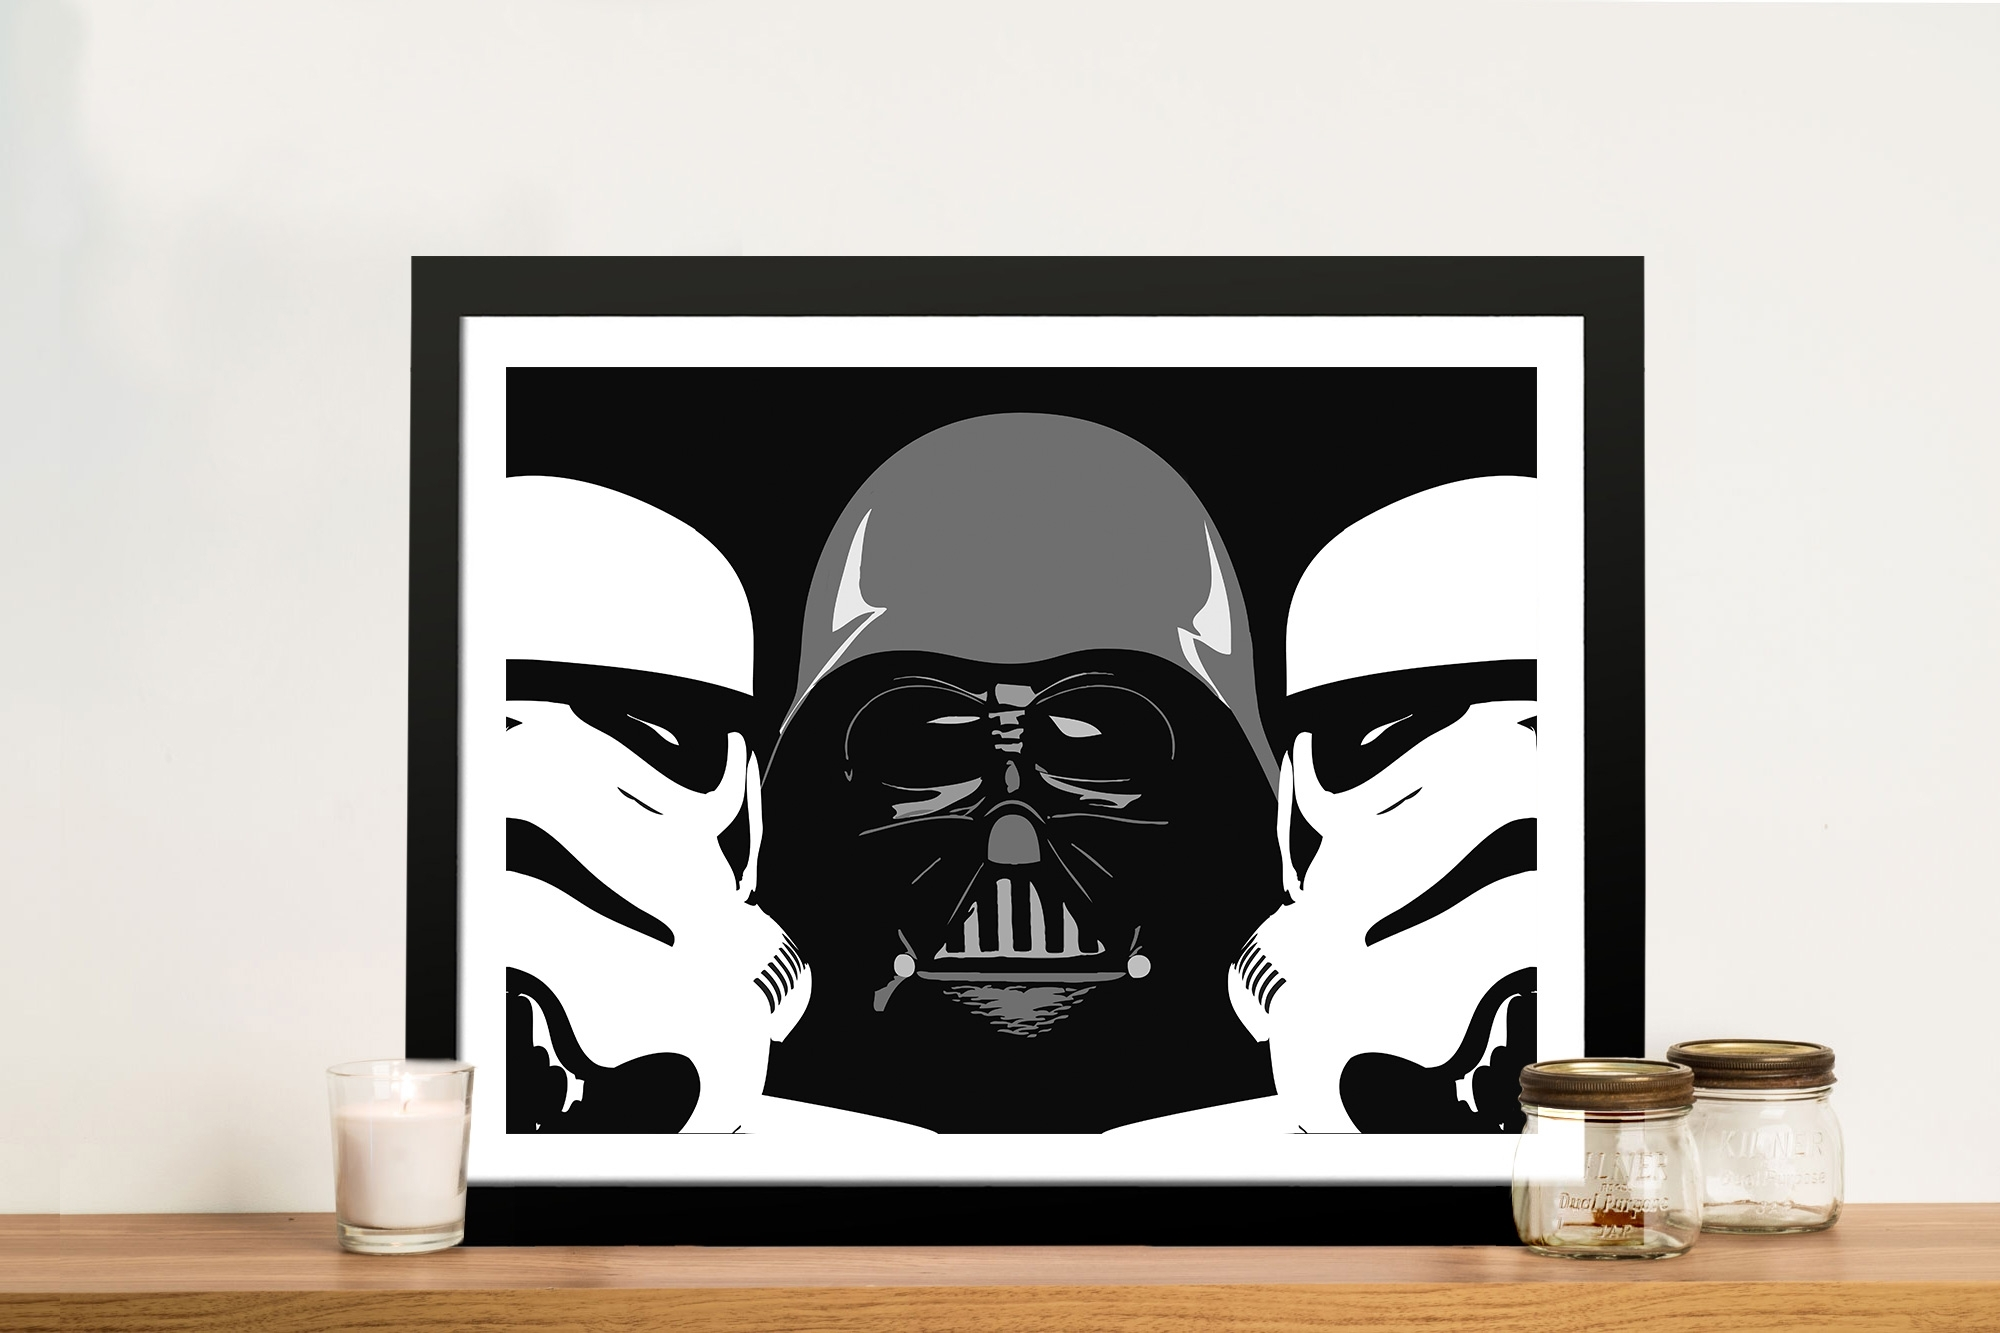 Three Amigos Darth Vader Wall Art – Canvas Prints Australia Regarding 2018 Darth Vader Wall Art (View 19 of 20)